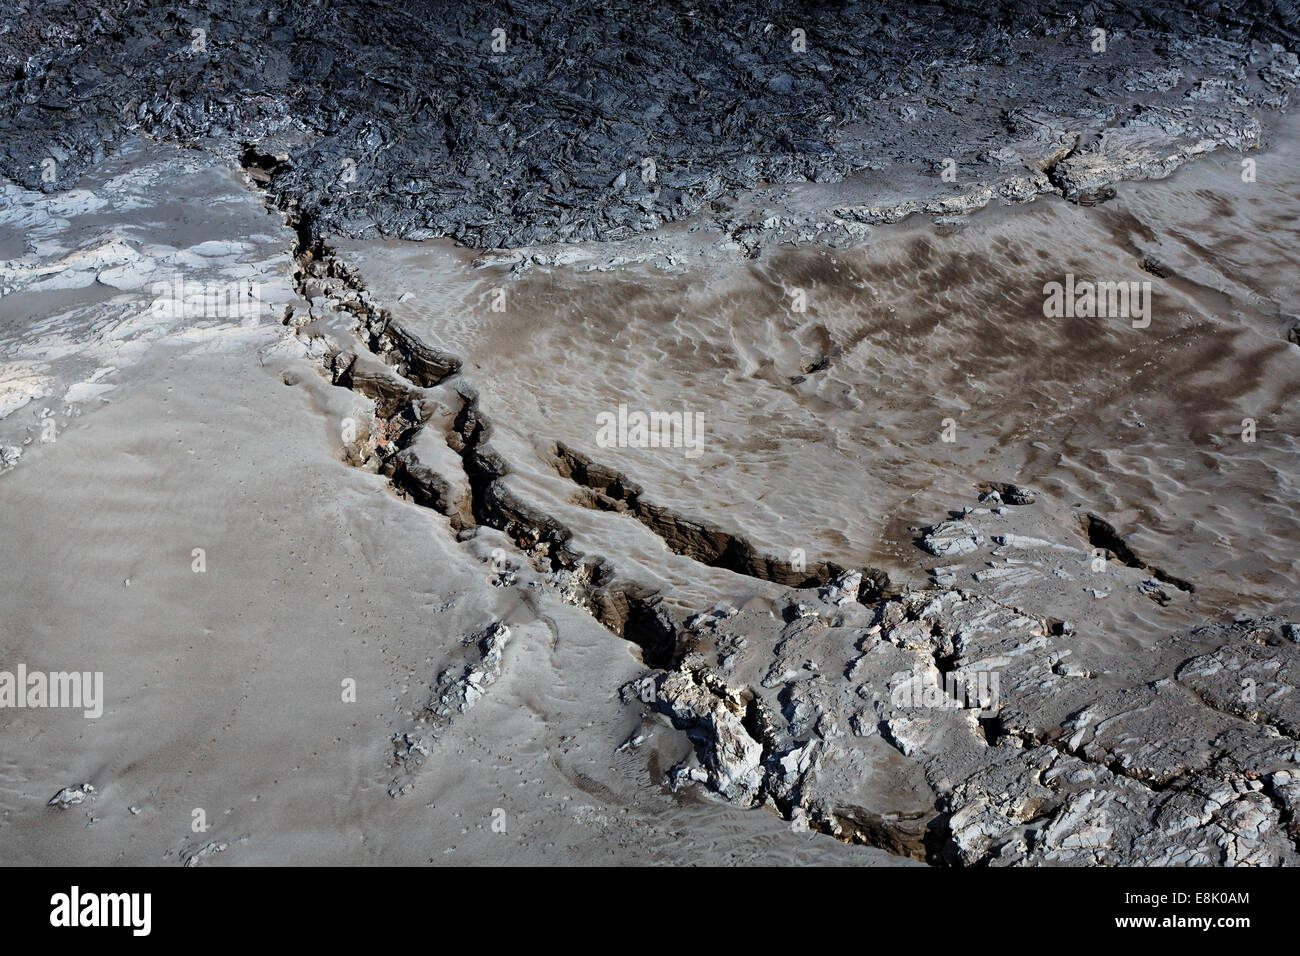 Huge cracks and lava from the eruption at Holuhraun near the Bardarbunga Volcano, Iceland. - Stock Image